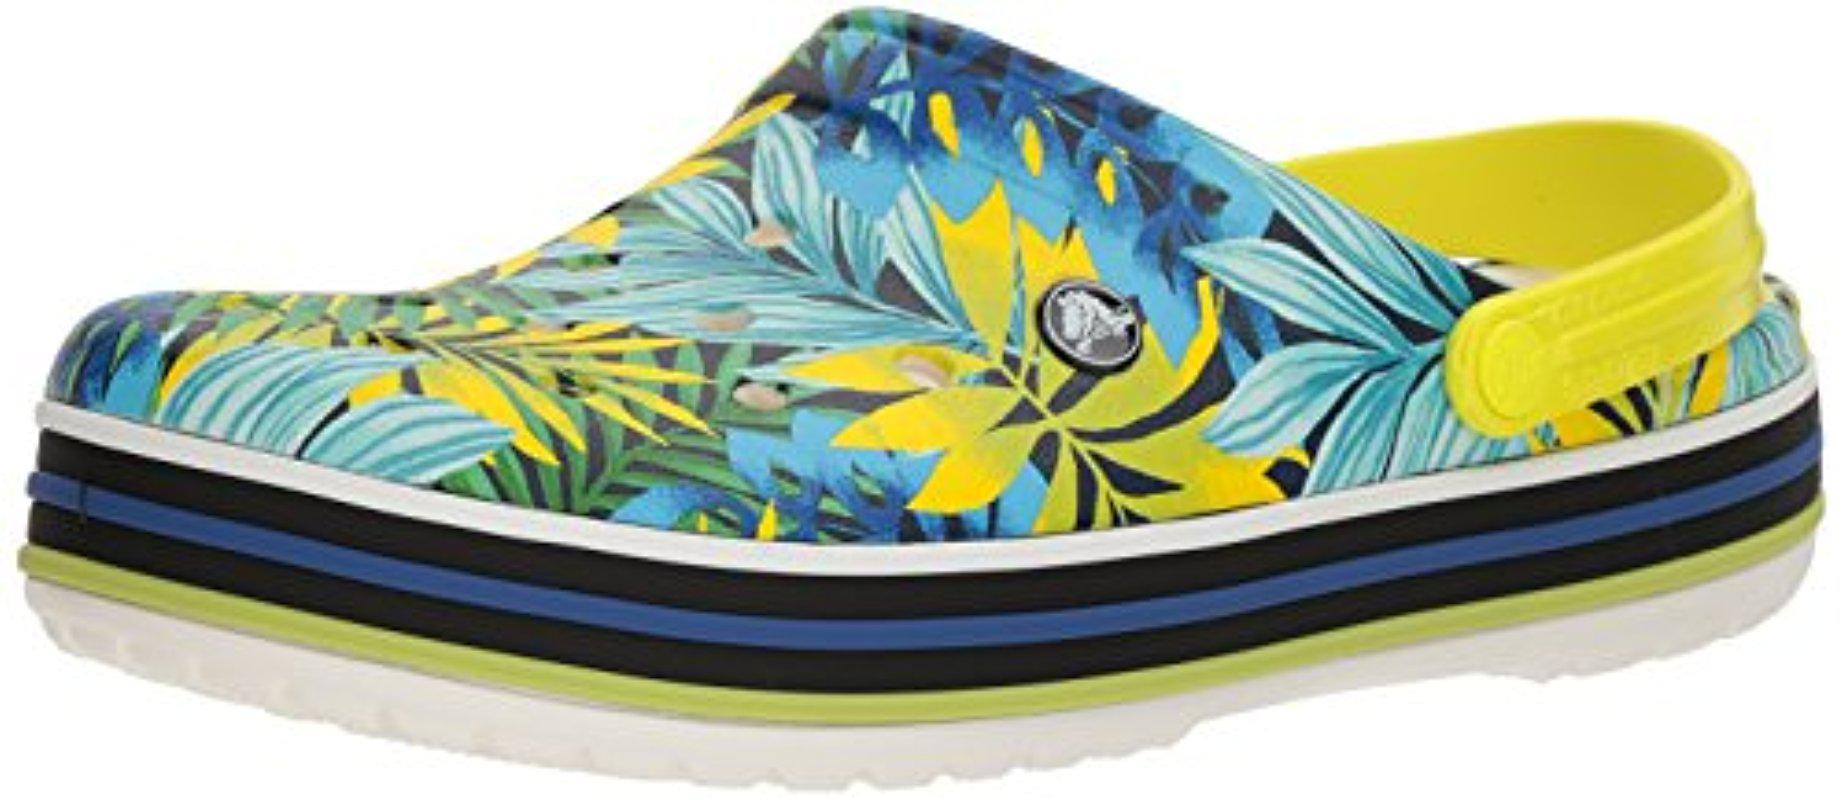 Unisex Crocband Tropical Graphic Clog